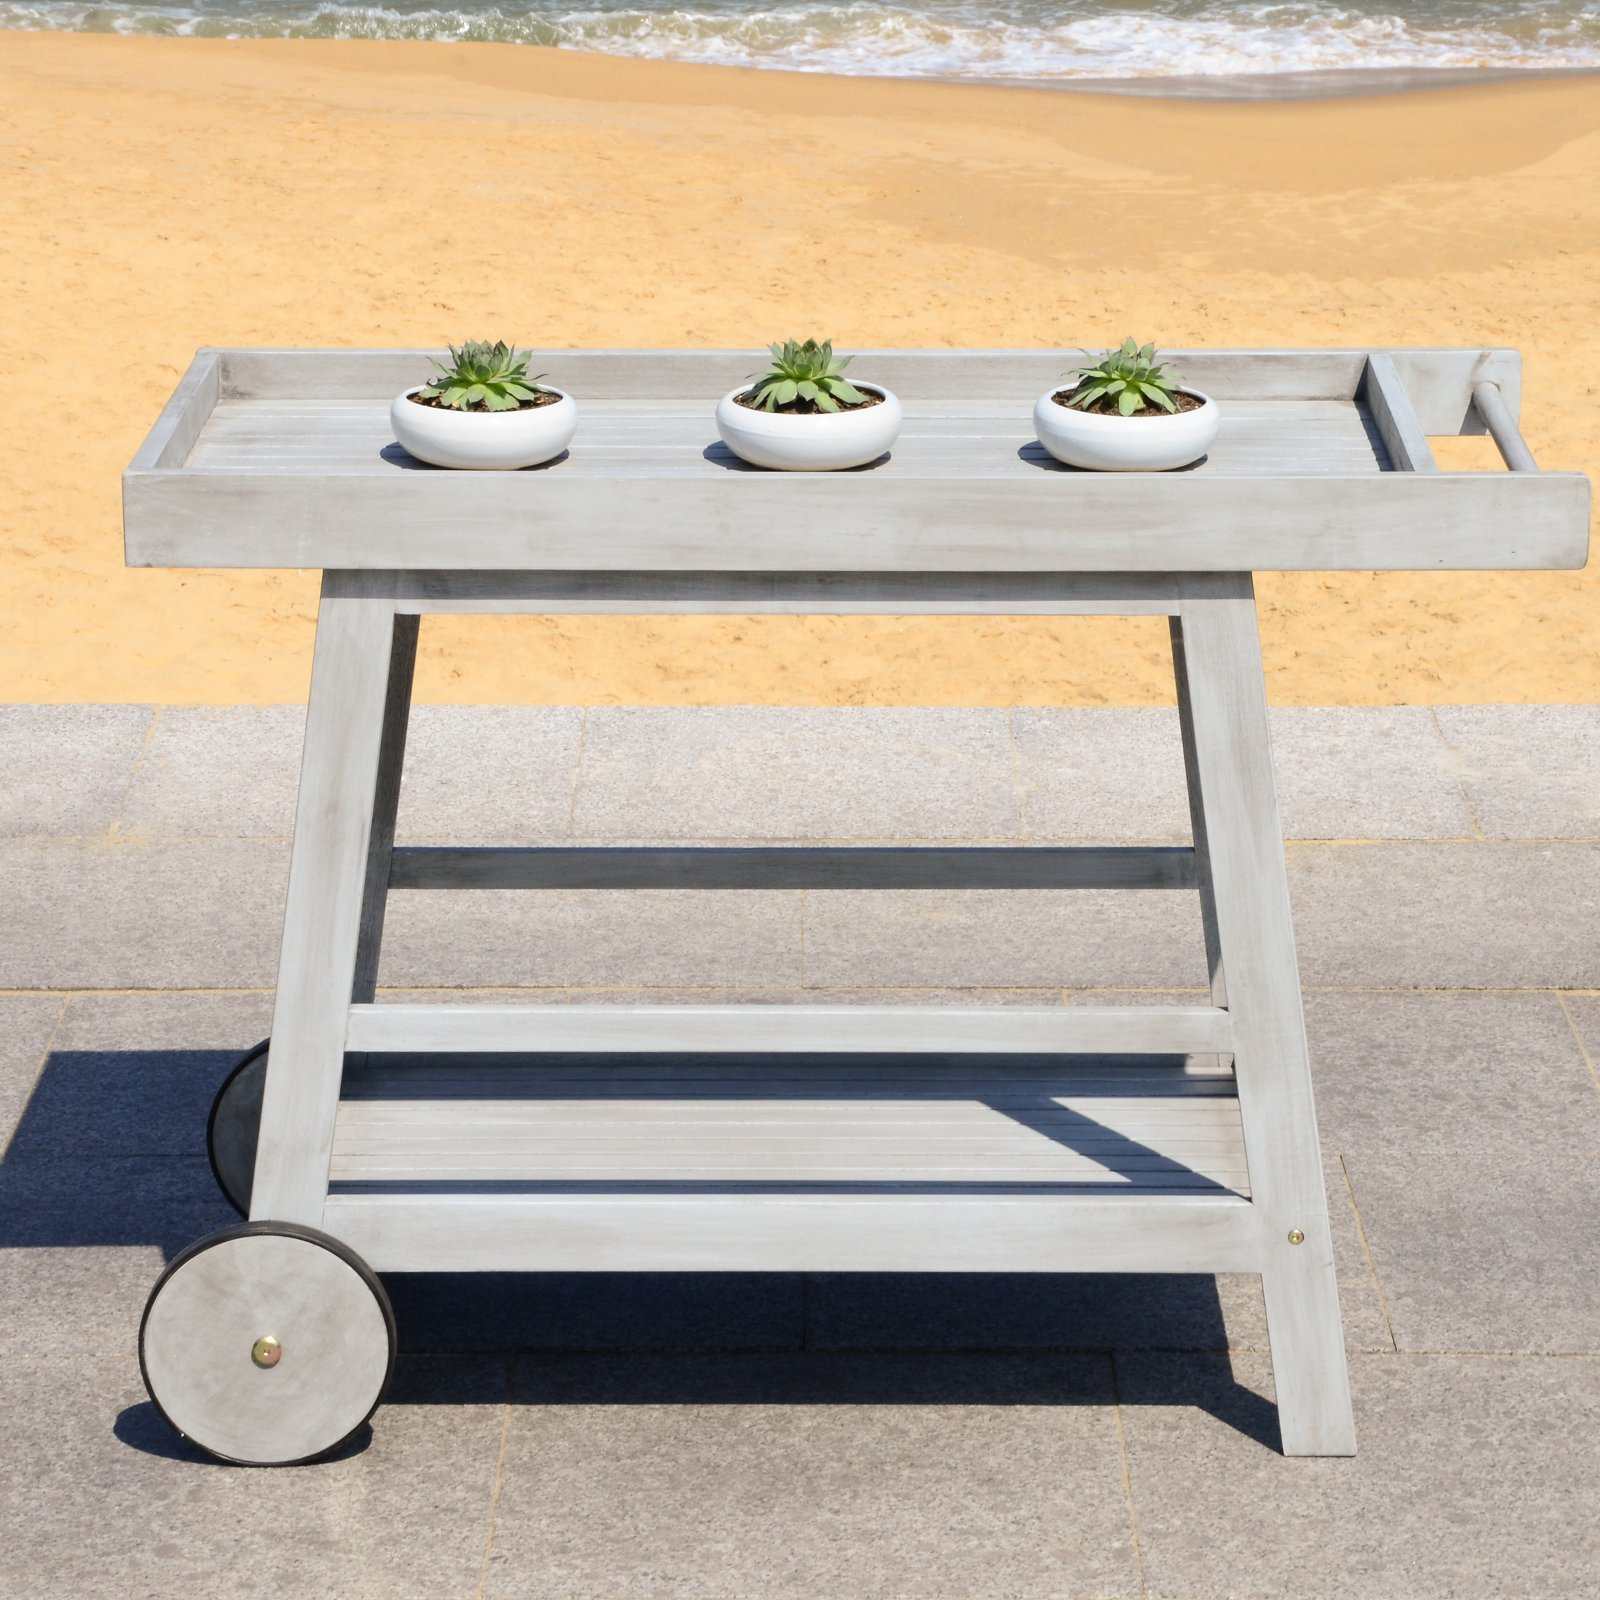 Safavieh Renzo 2 Tier Outdoor Farmhouse Wooden Bar Cart